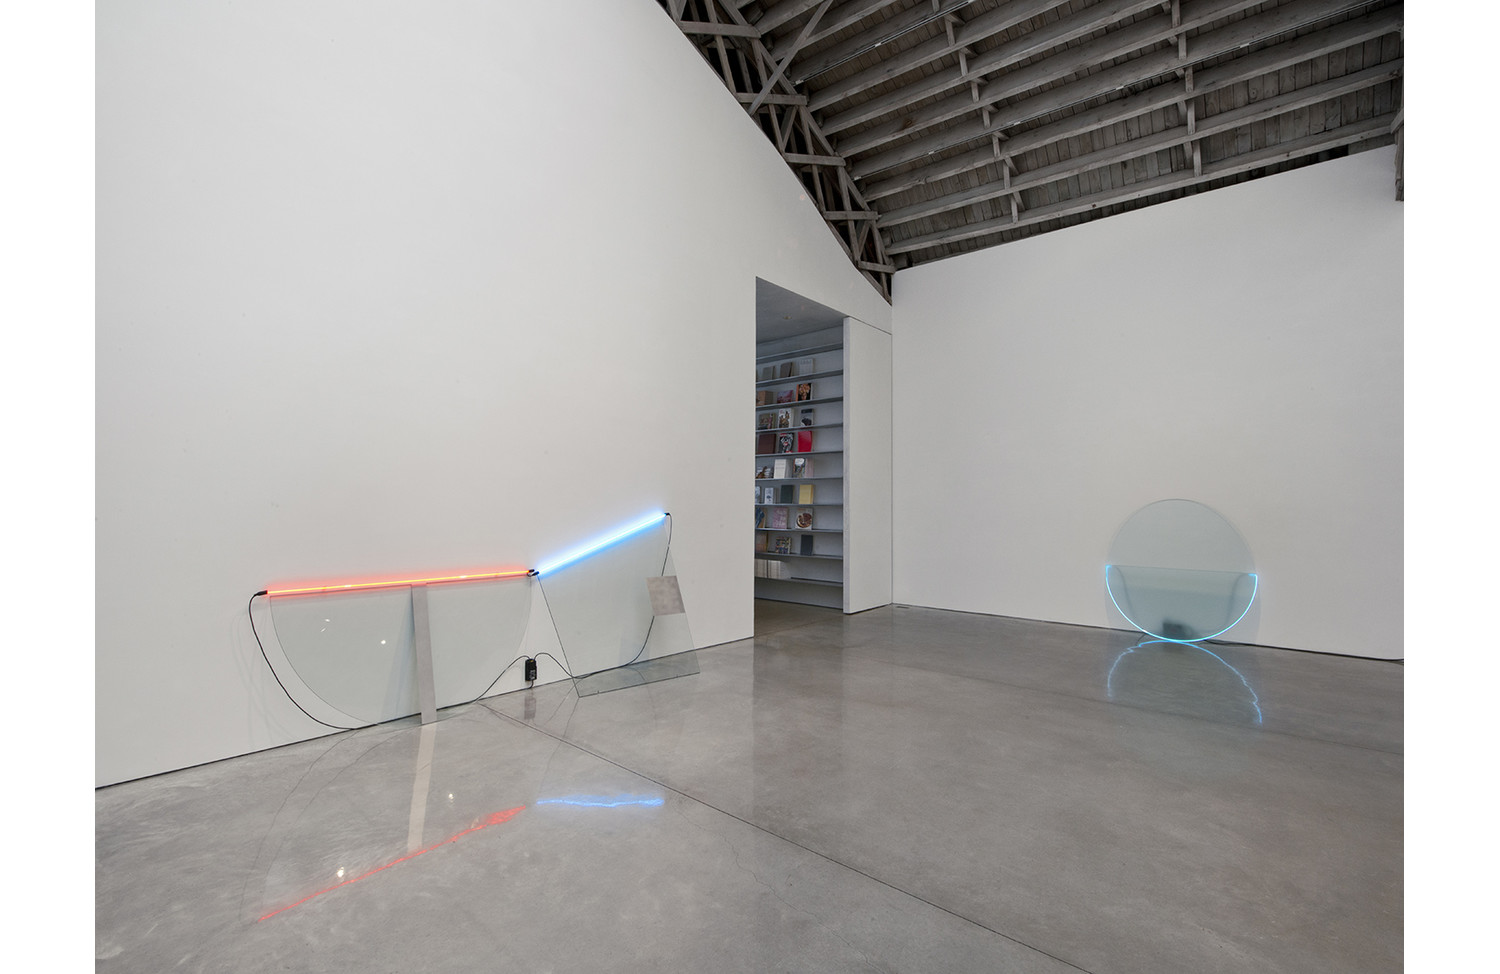 Keith Sonnier Neon Wall Slant - View 3